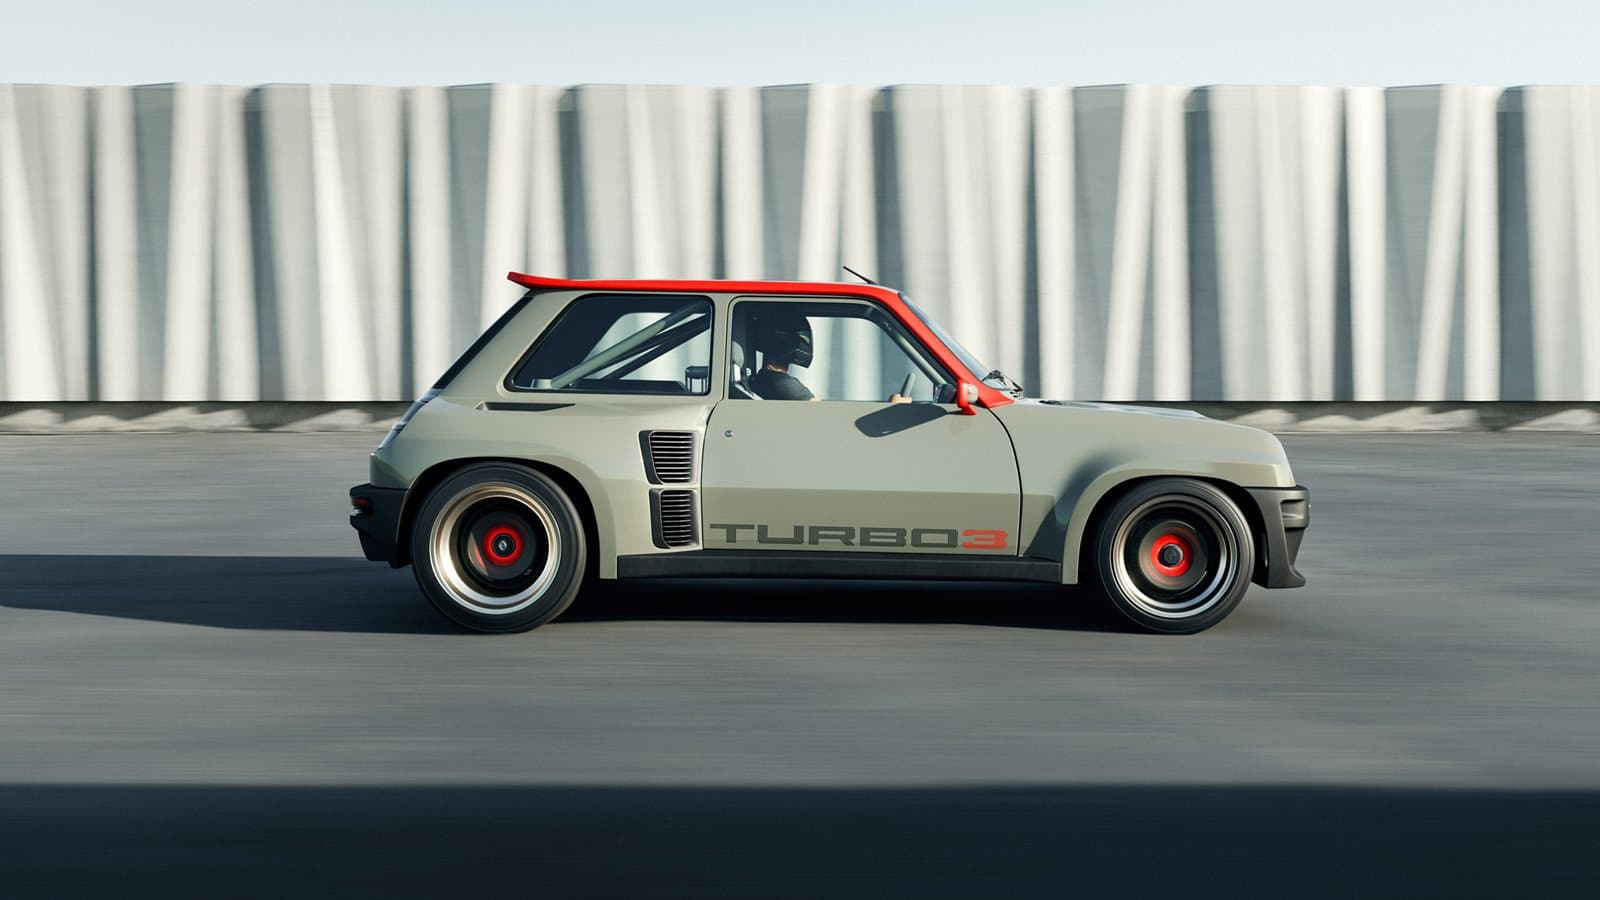 Renault 5 Turbo 3 lateral